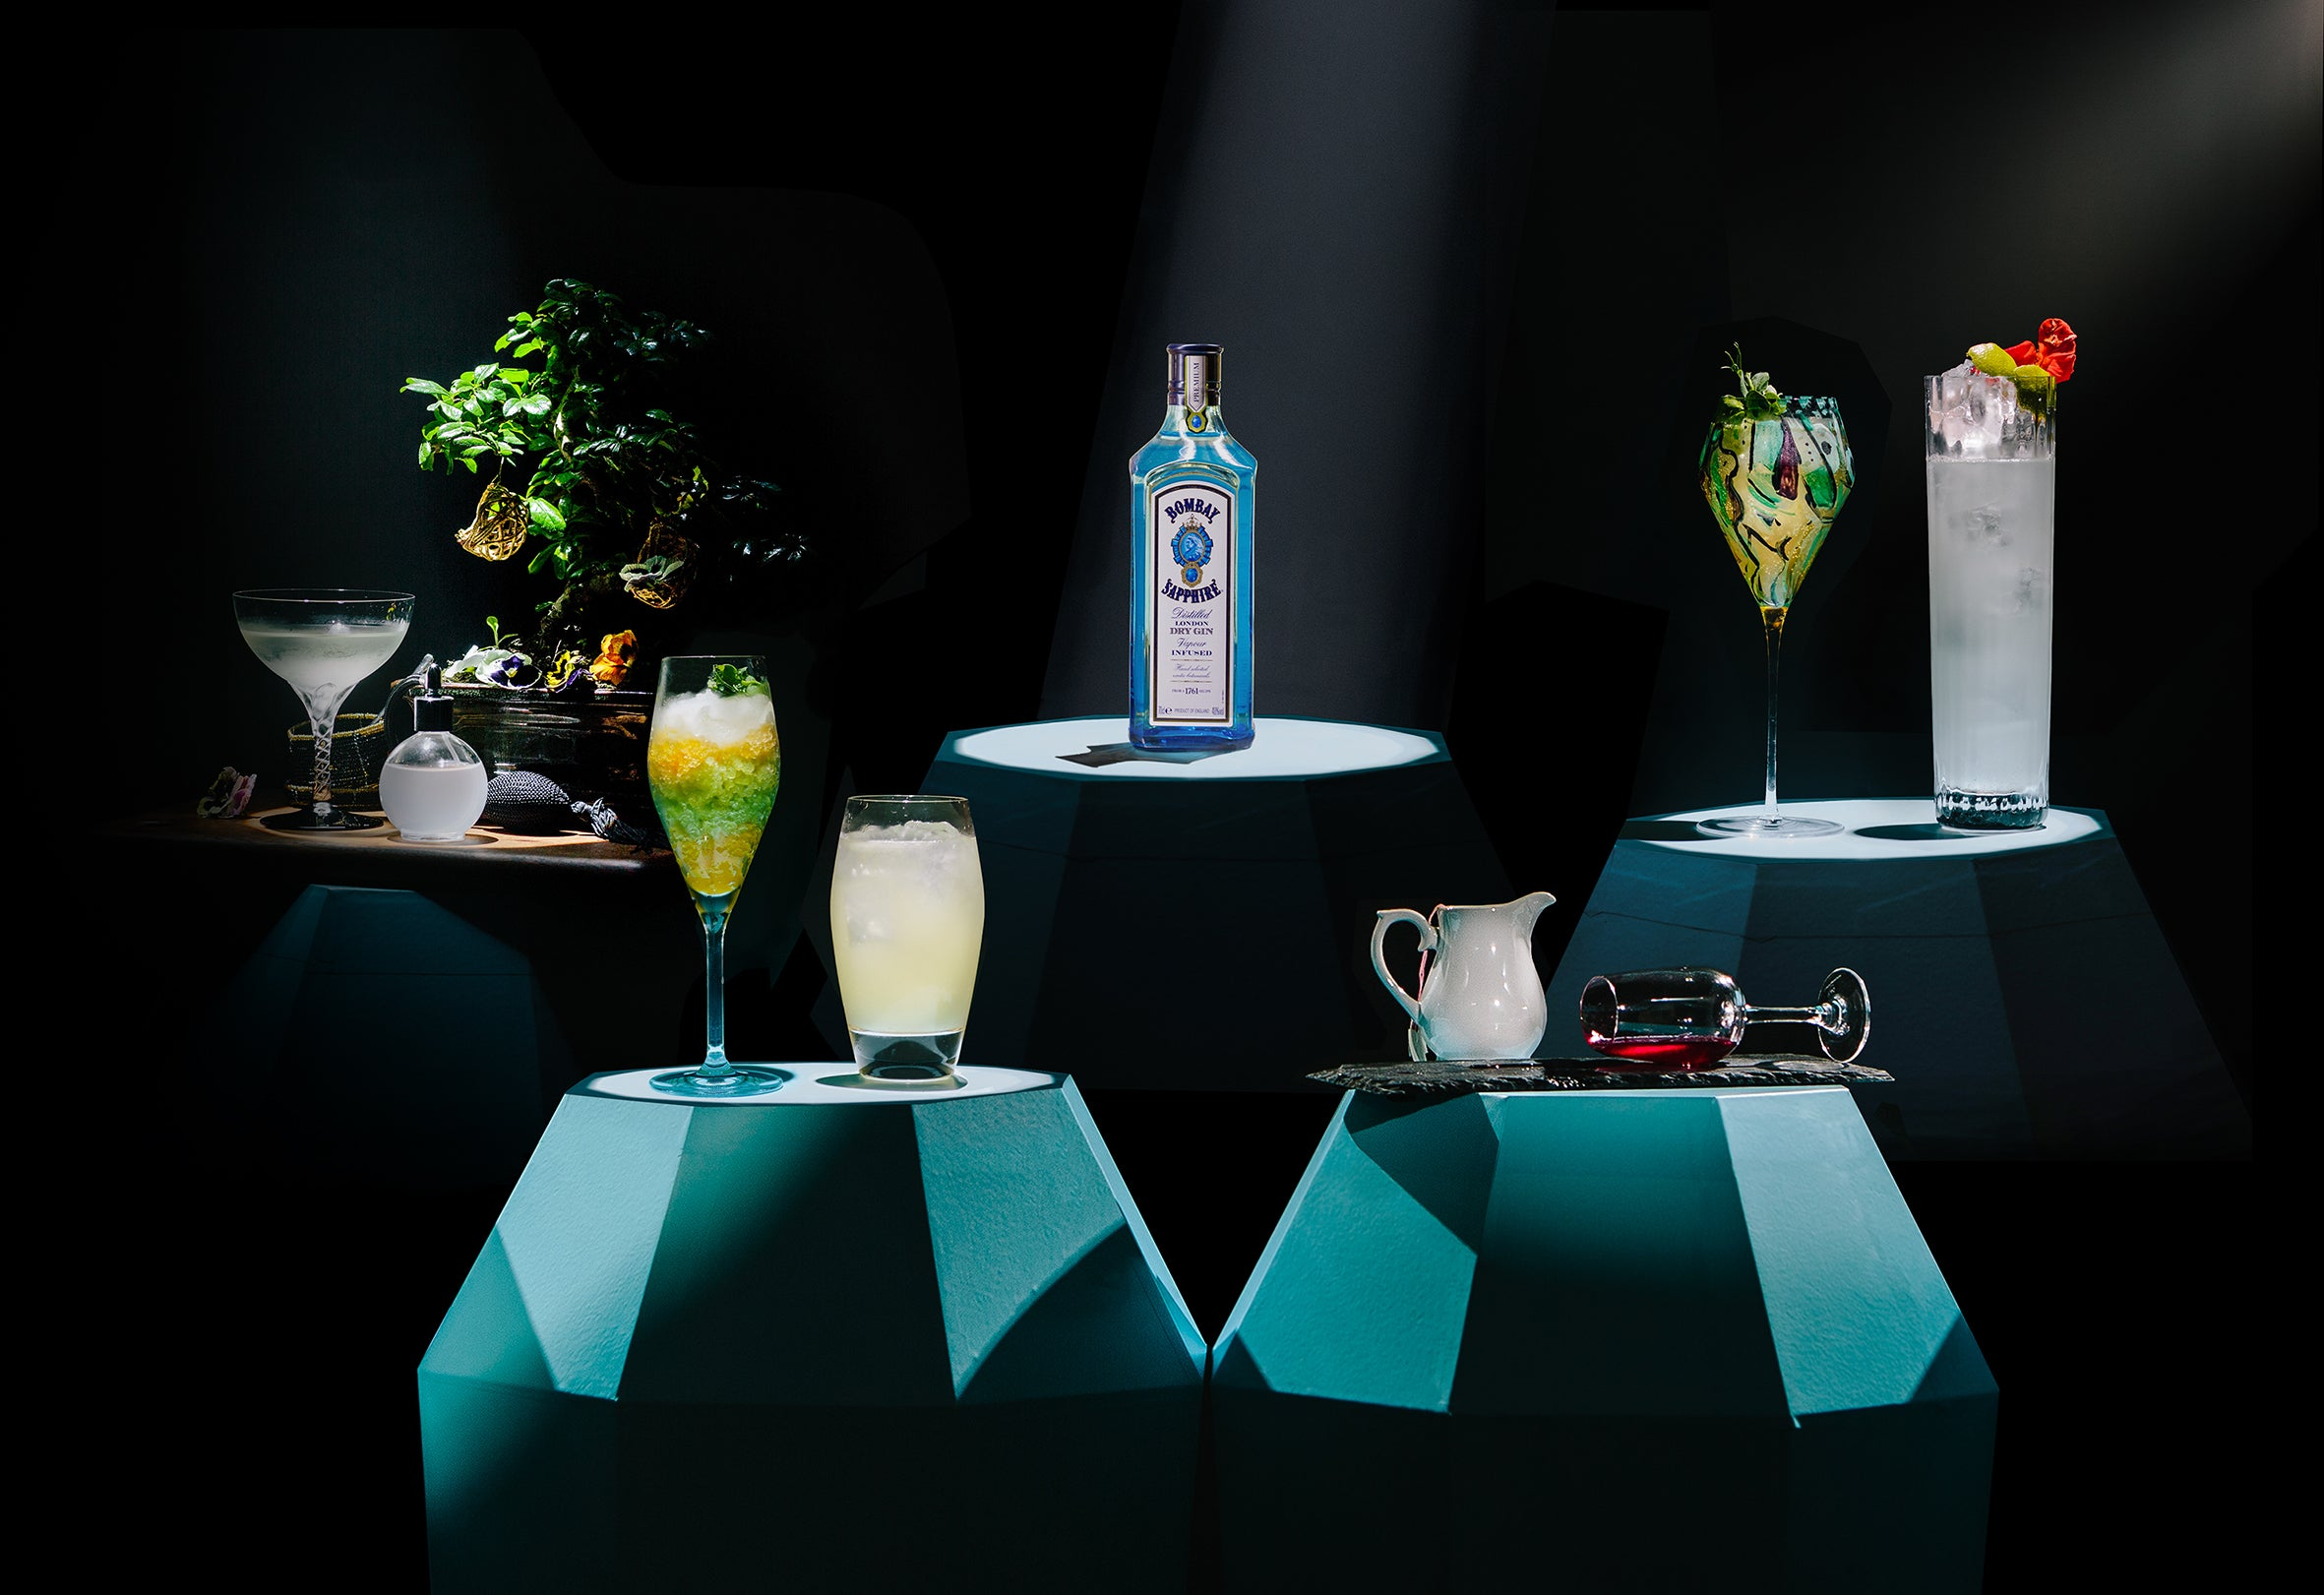 Bombay Sapphire cocktail designs